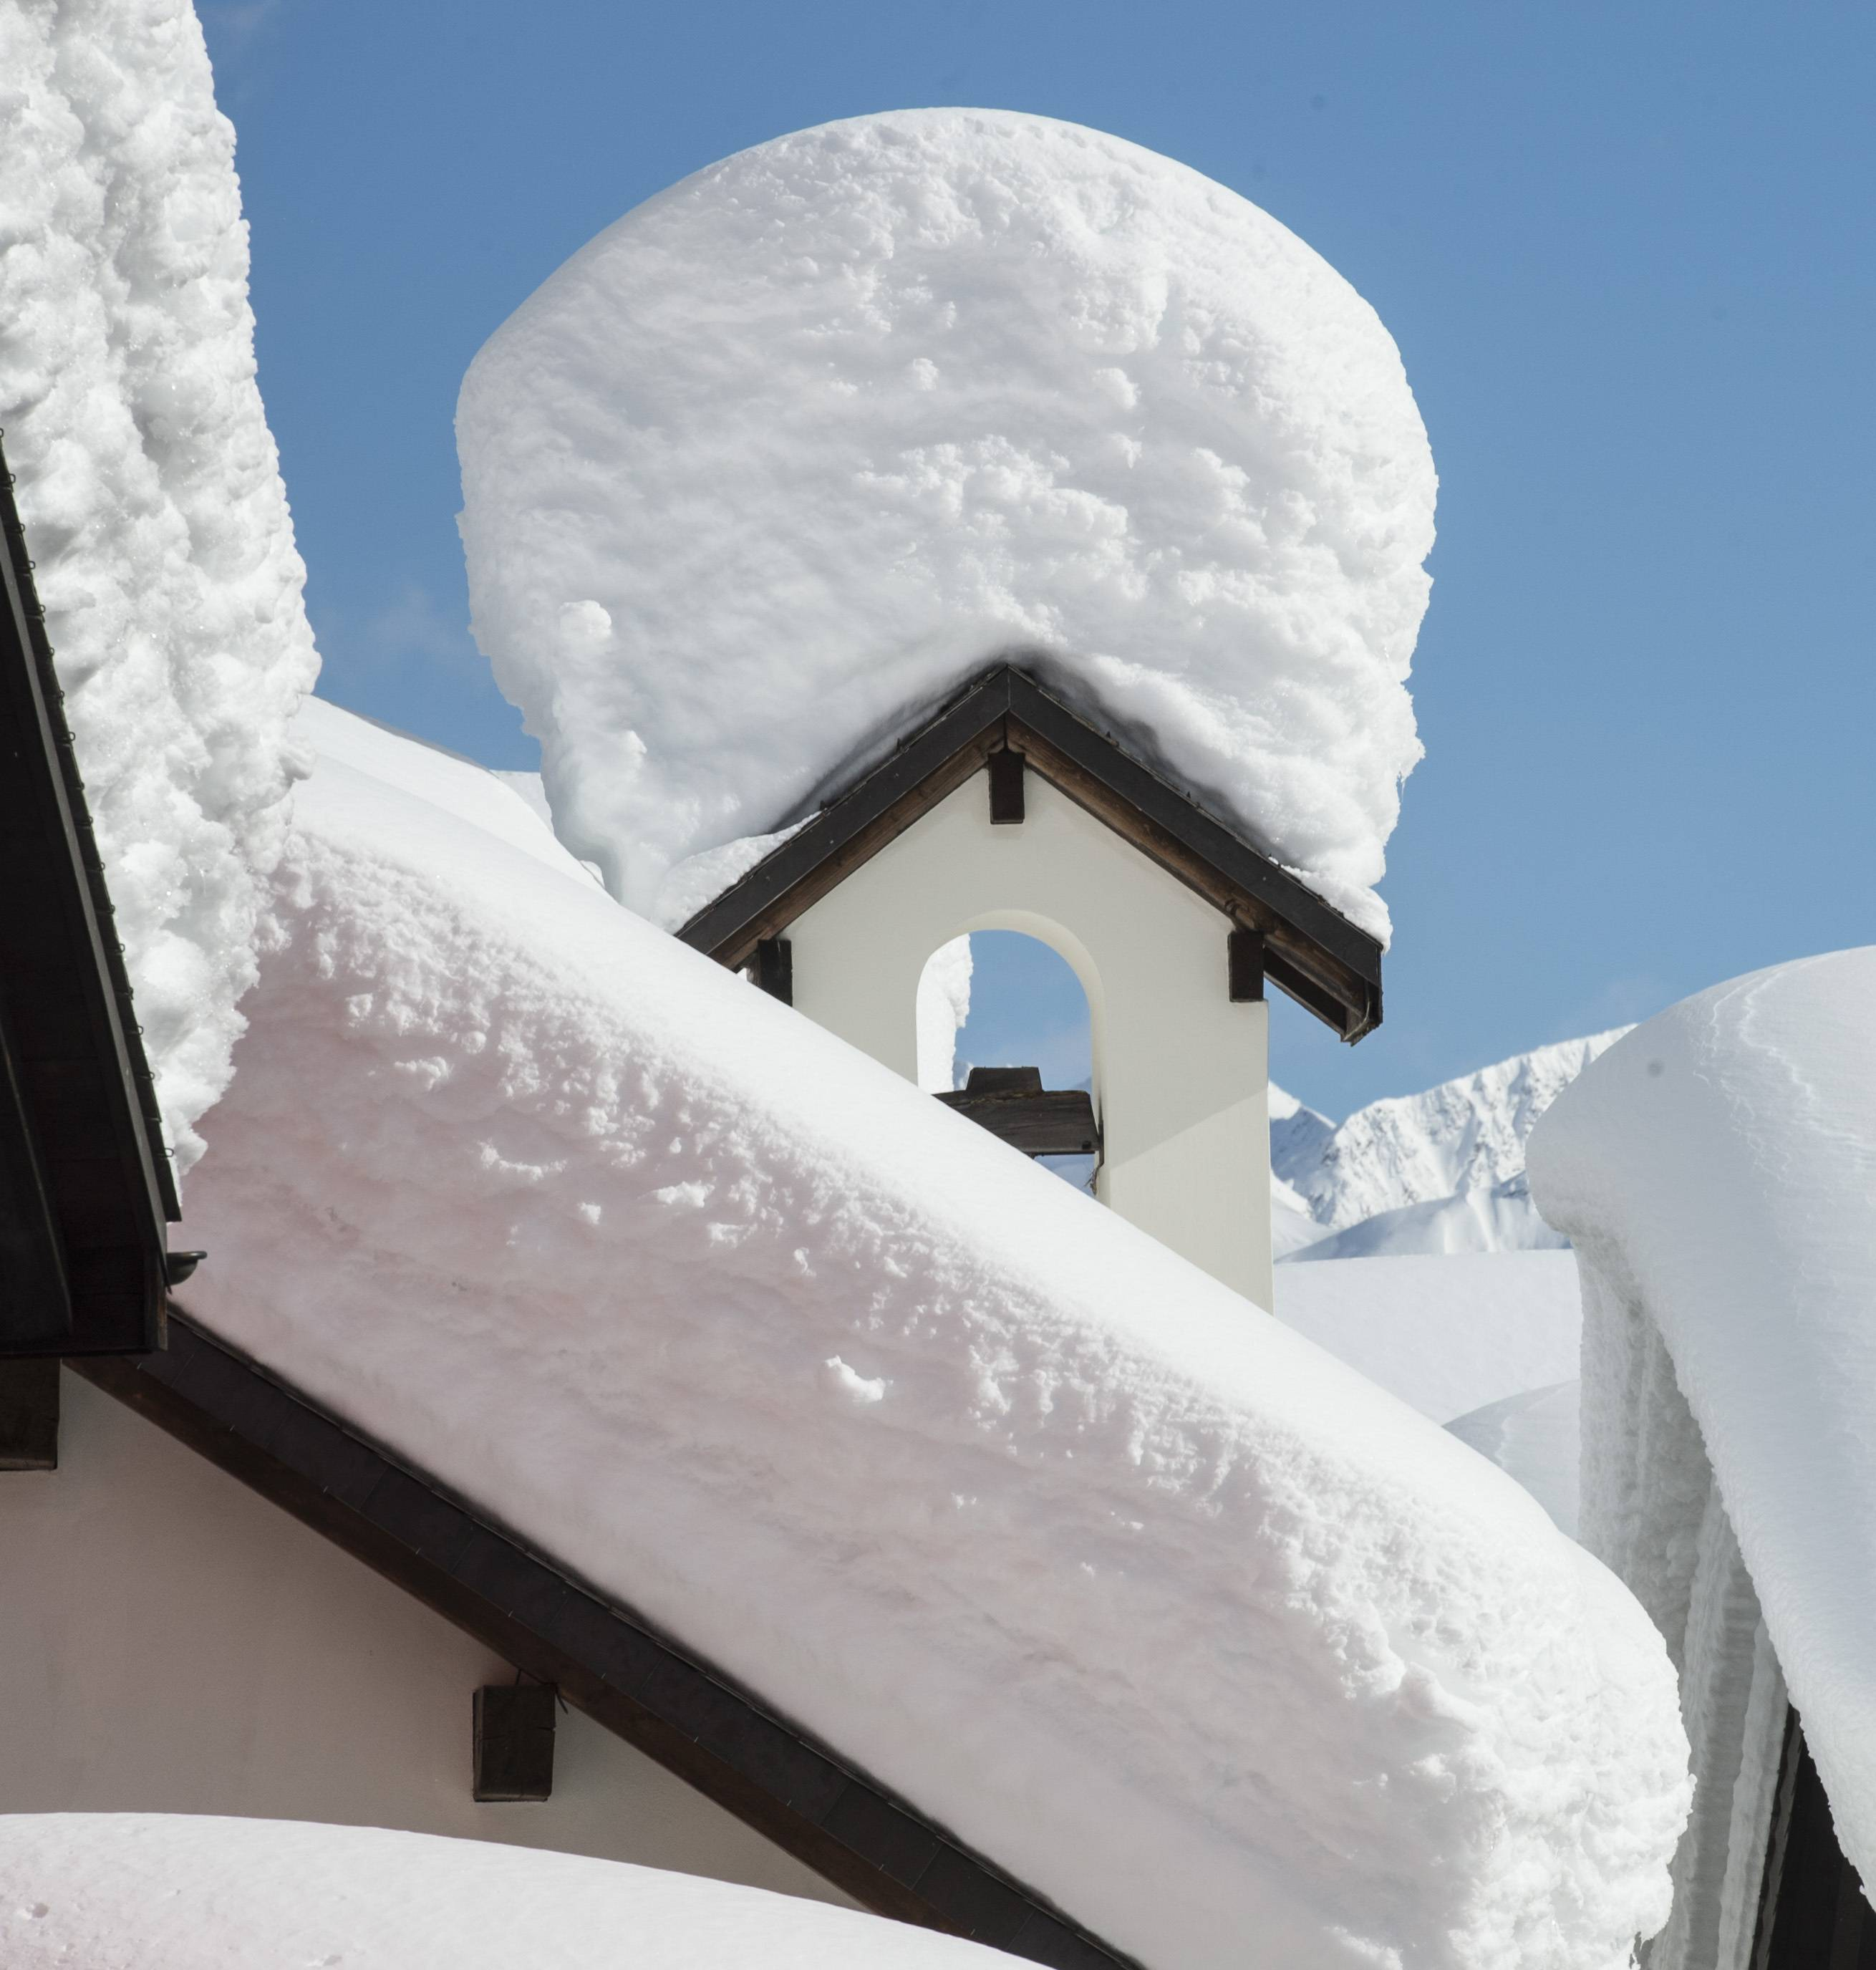 Snow masses pile up on the rooftops in the village of Bedretto, Switzerland, Sunday, Feb. 9, 2014. Weather forecasts predict changeable weather.